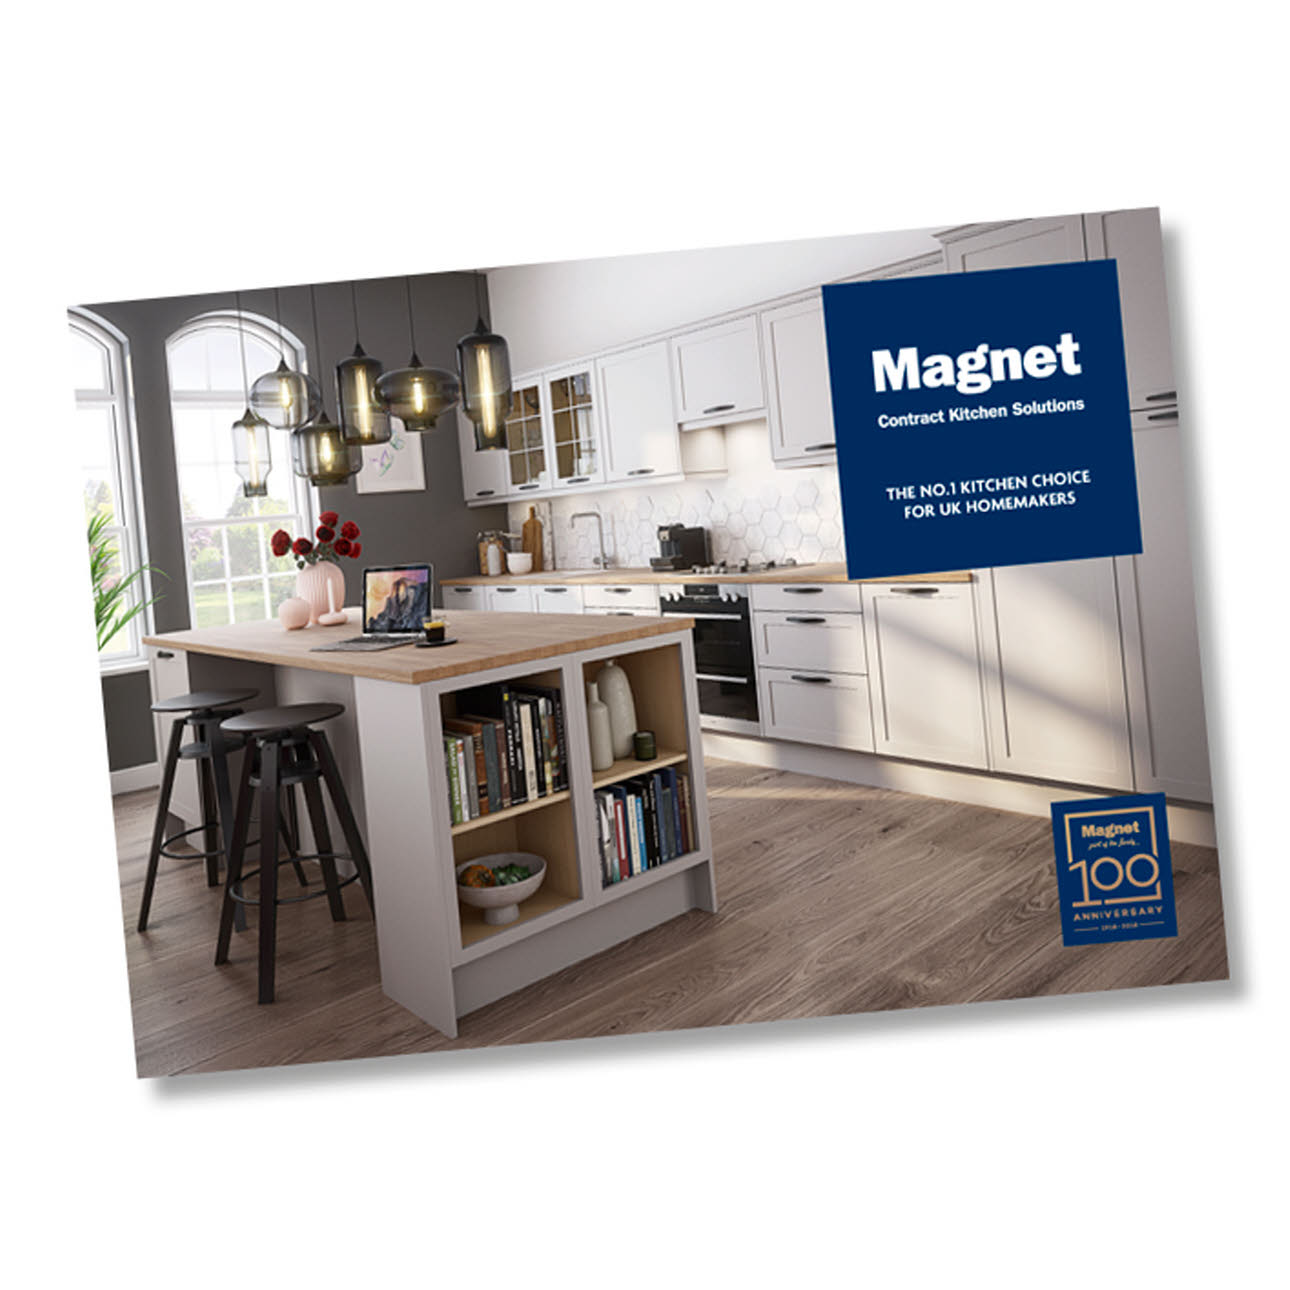 Kitchen Design Qualifications Uk: Social Housing Contract Kitchens & Developers